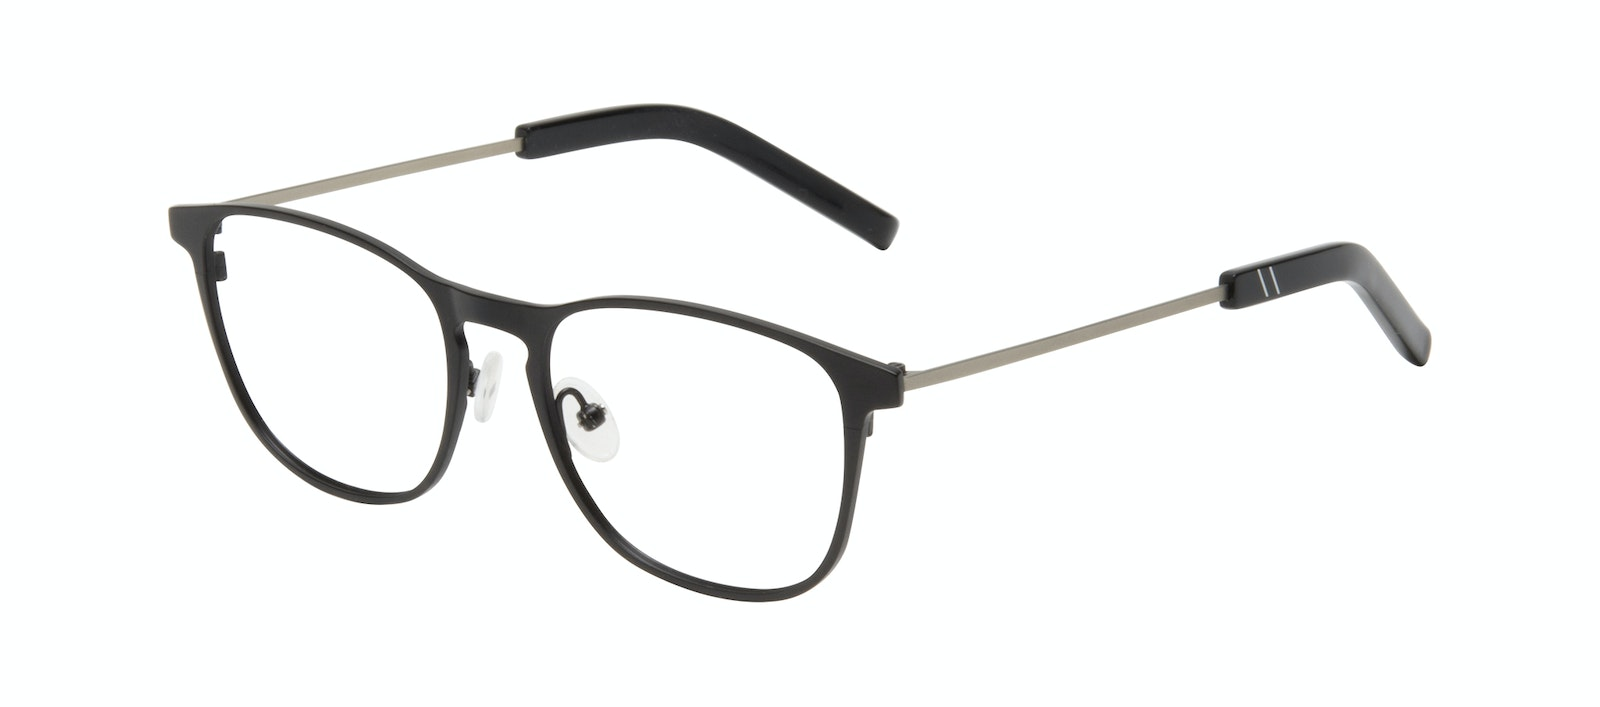 Affordable Fashion Glasses Square Eyeglasses Men Elevate Onyx Matte Tilt